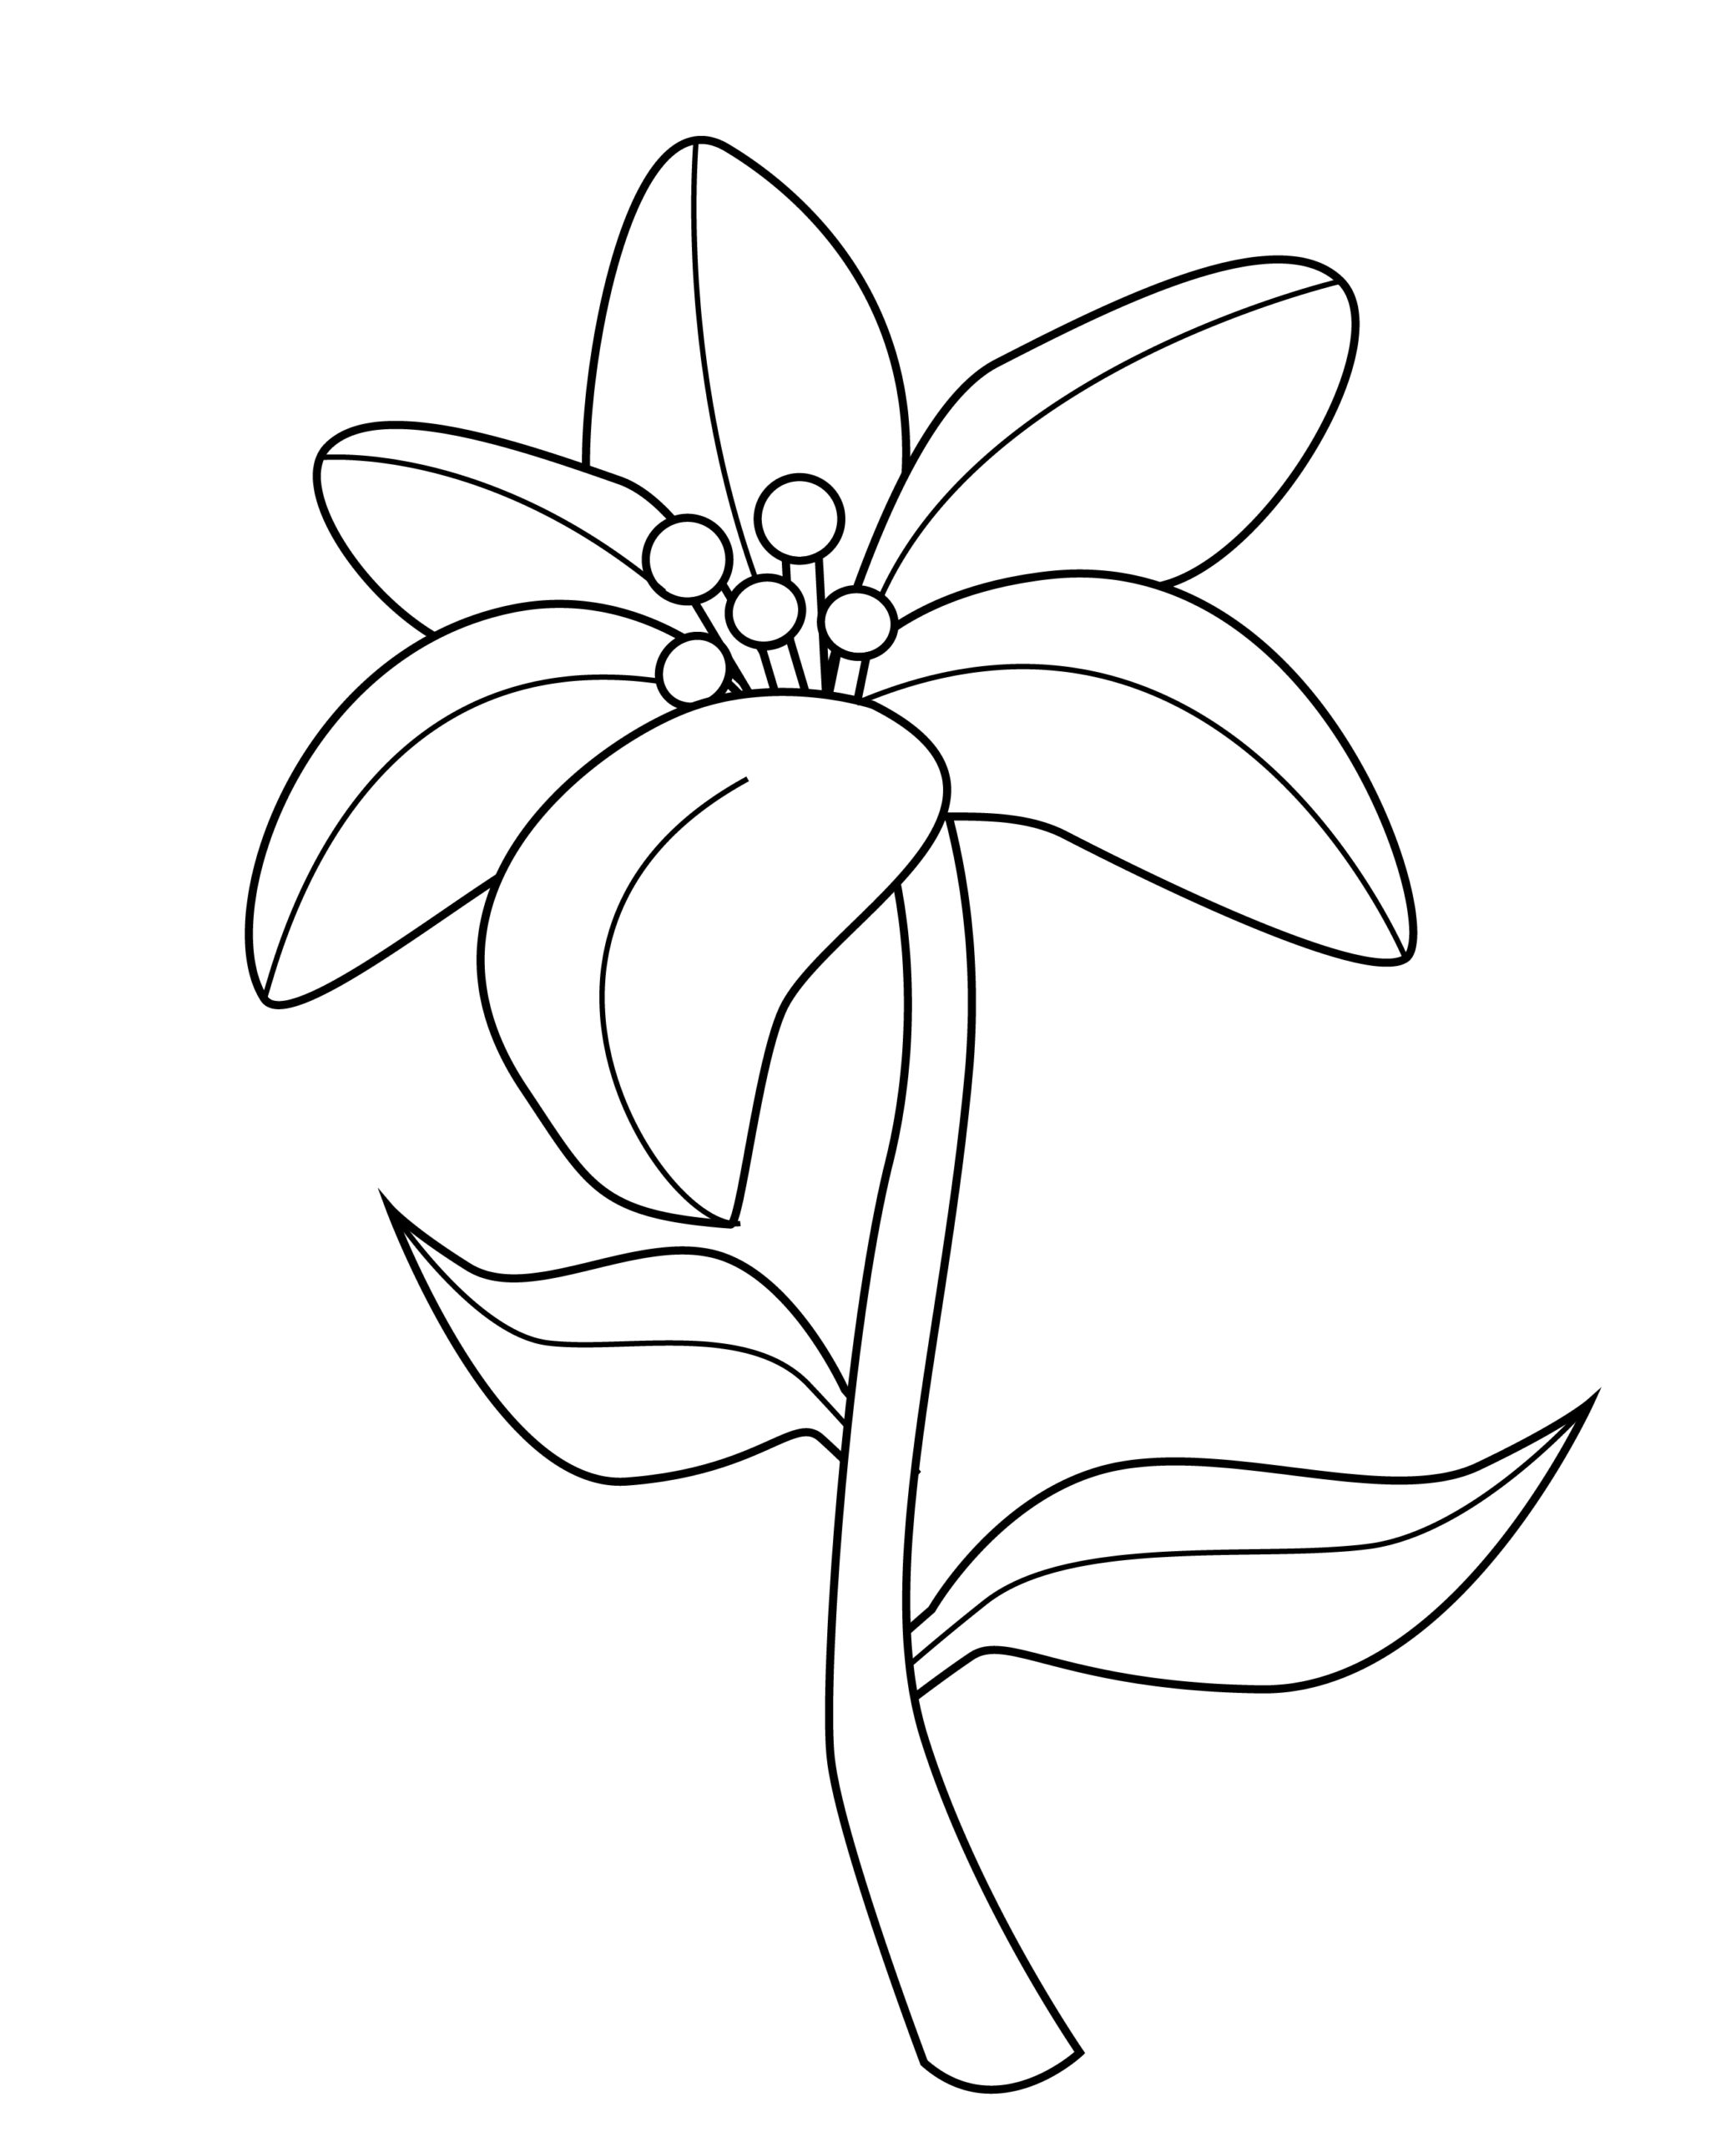 Printable lily template for summer template crafts for kids, preschoolers and toddlers